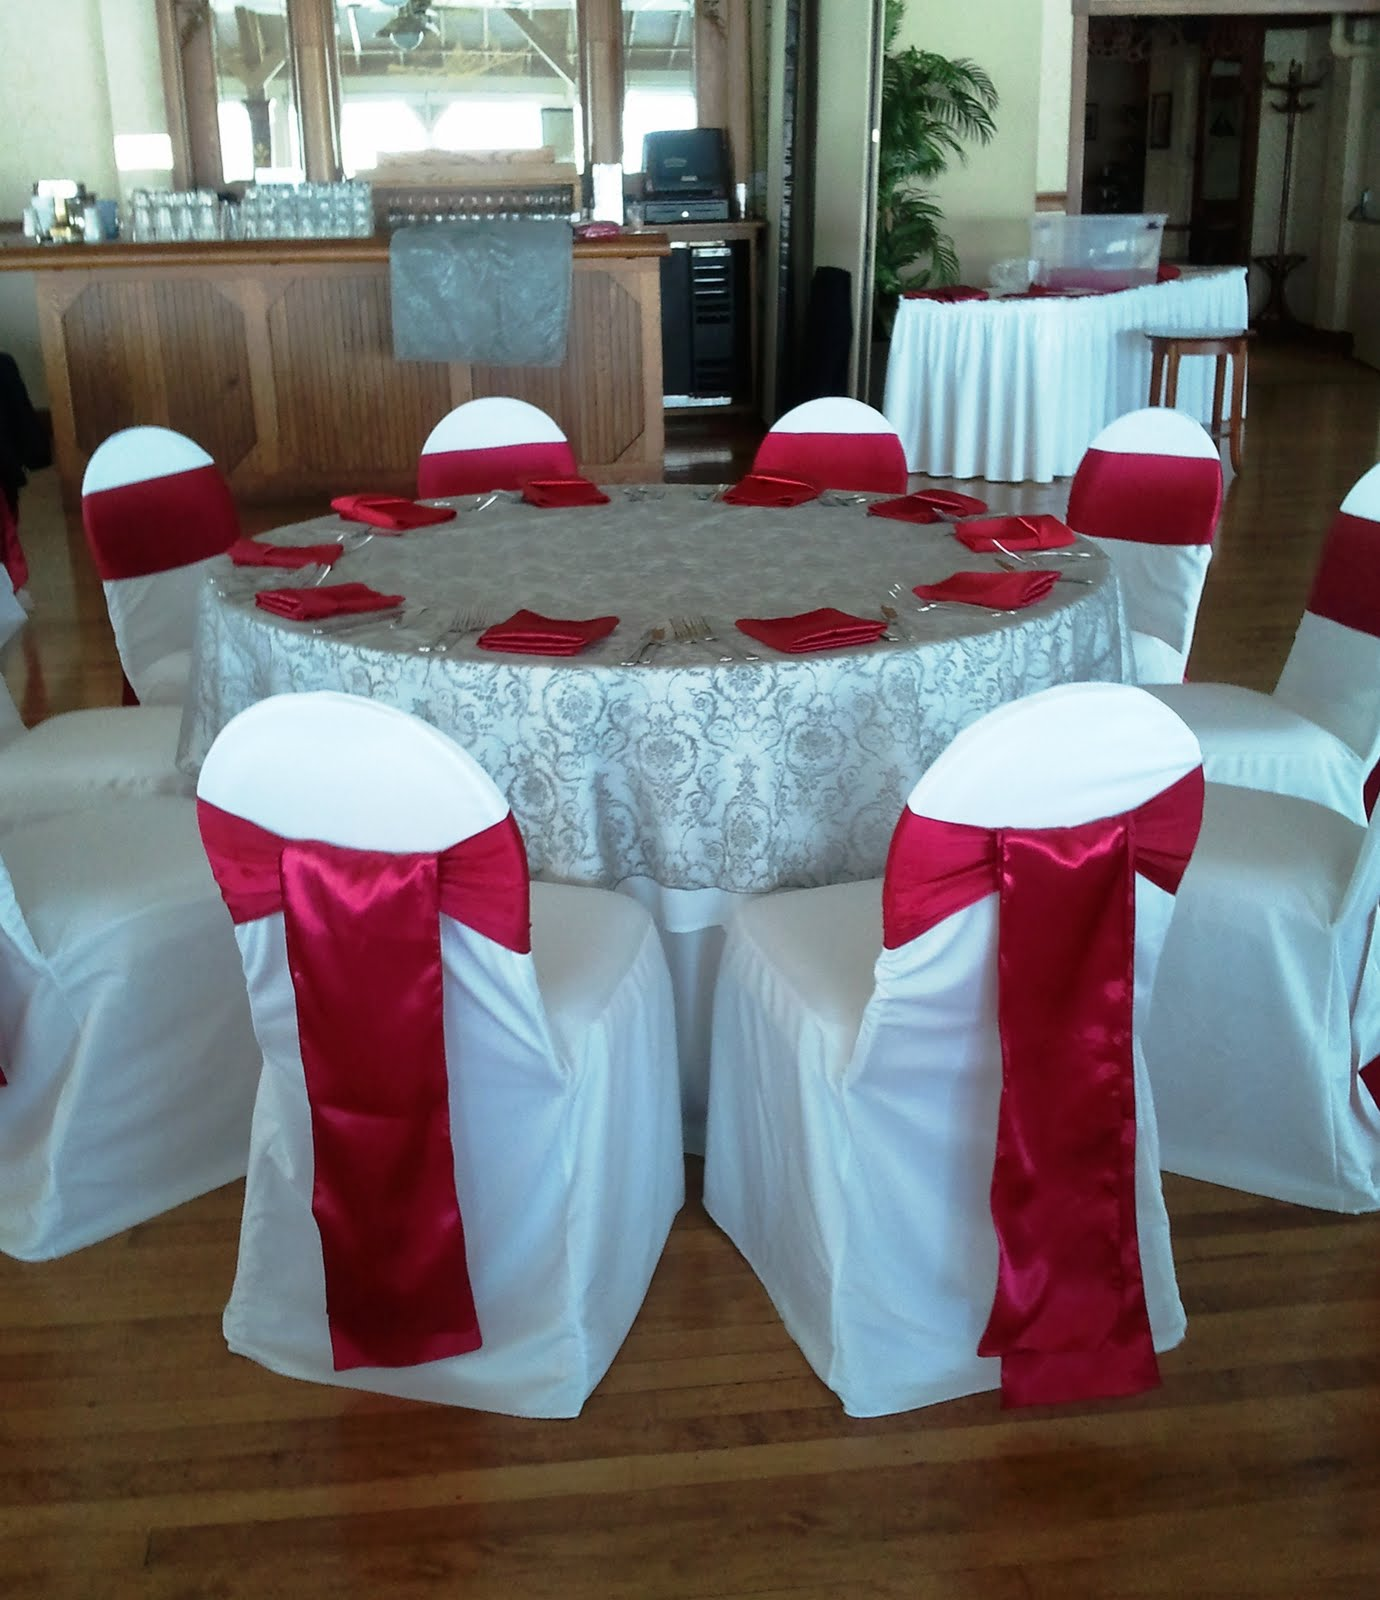 Chair Covers And Sashes Rental Craigslist Kitchen Table Chairs Orange County Wedding Sash Colors